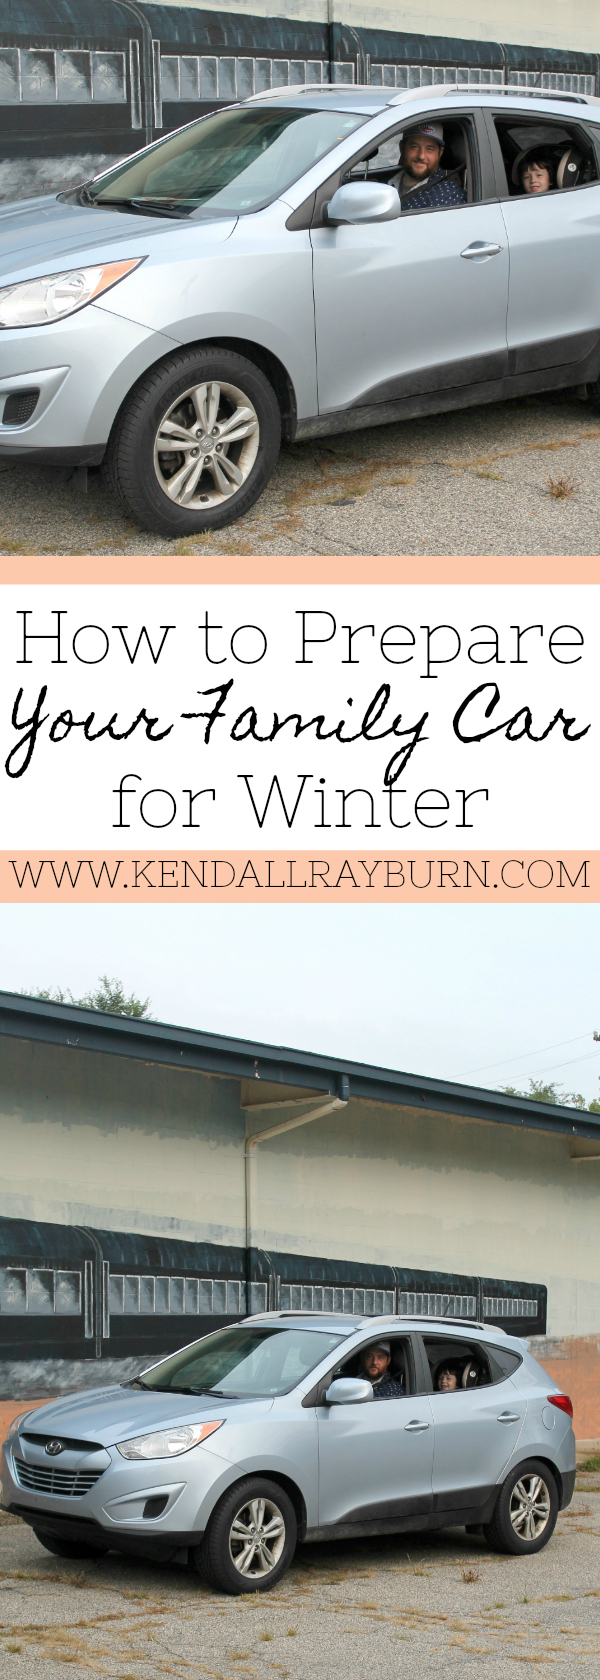 How to Prepare Your Family Car for Winter